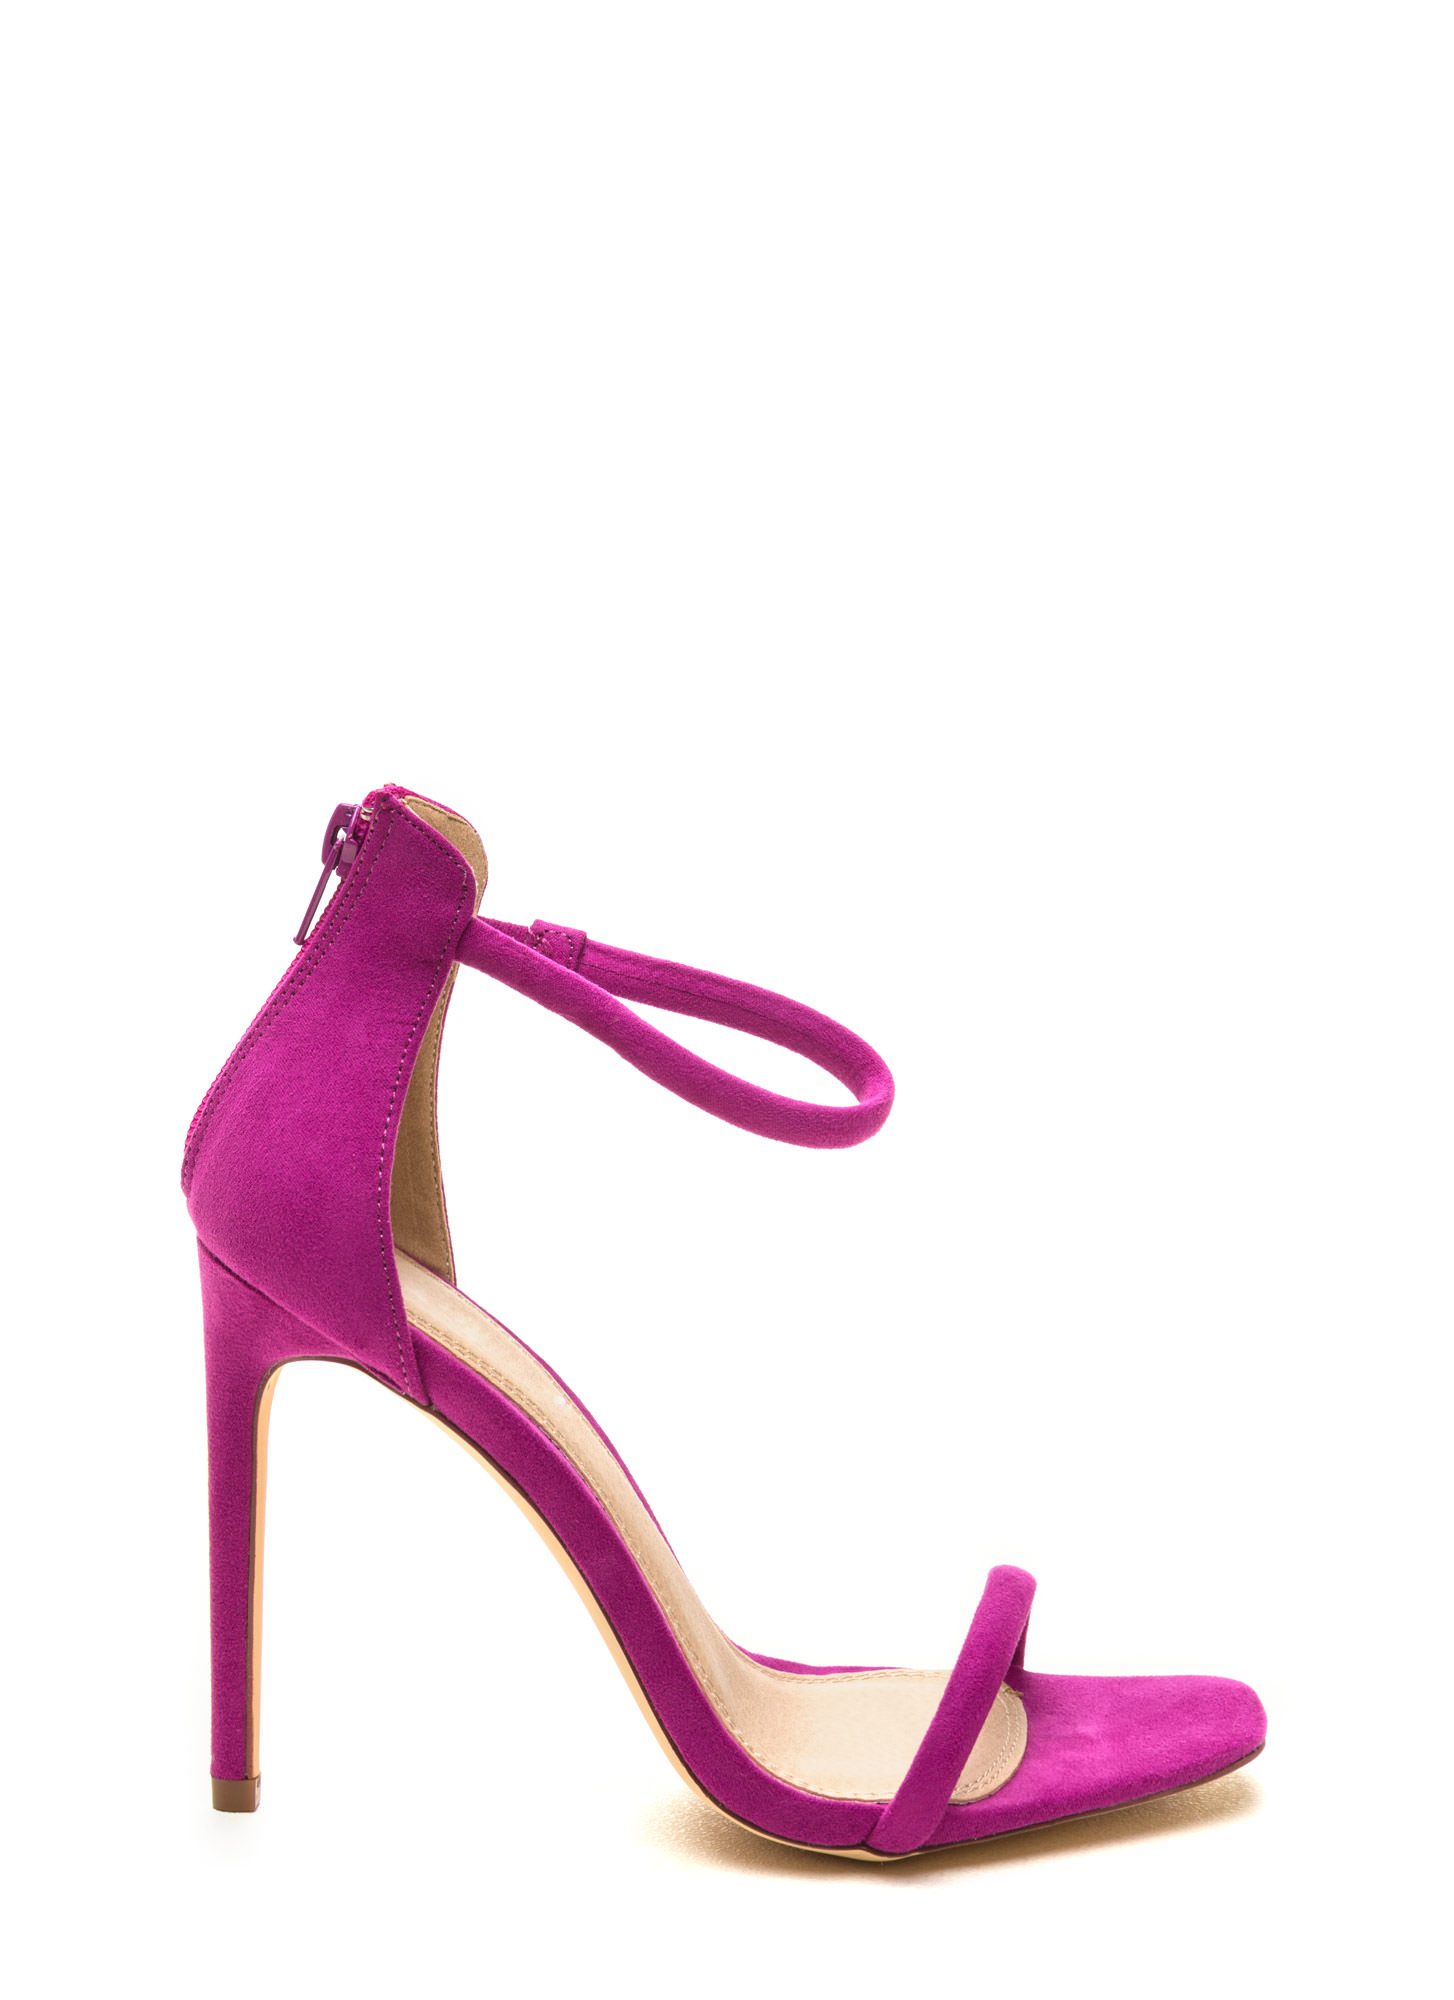 Just One Faux Suede Ankle Strap Heels